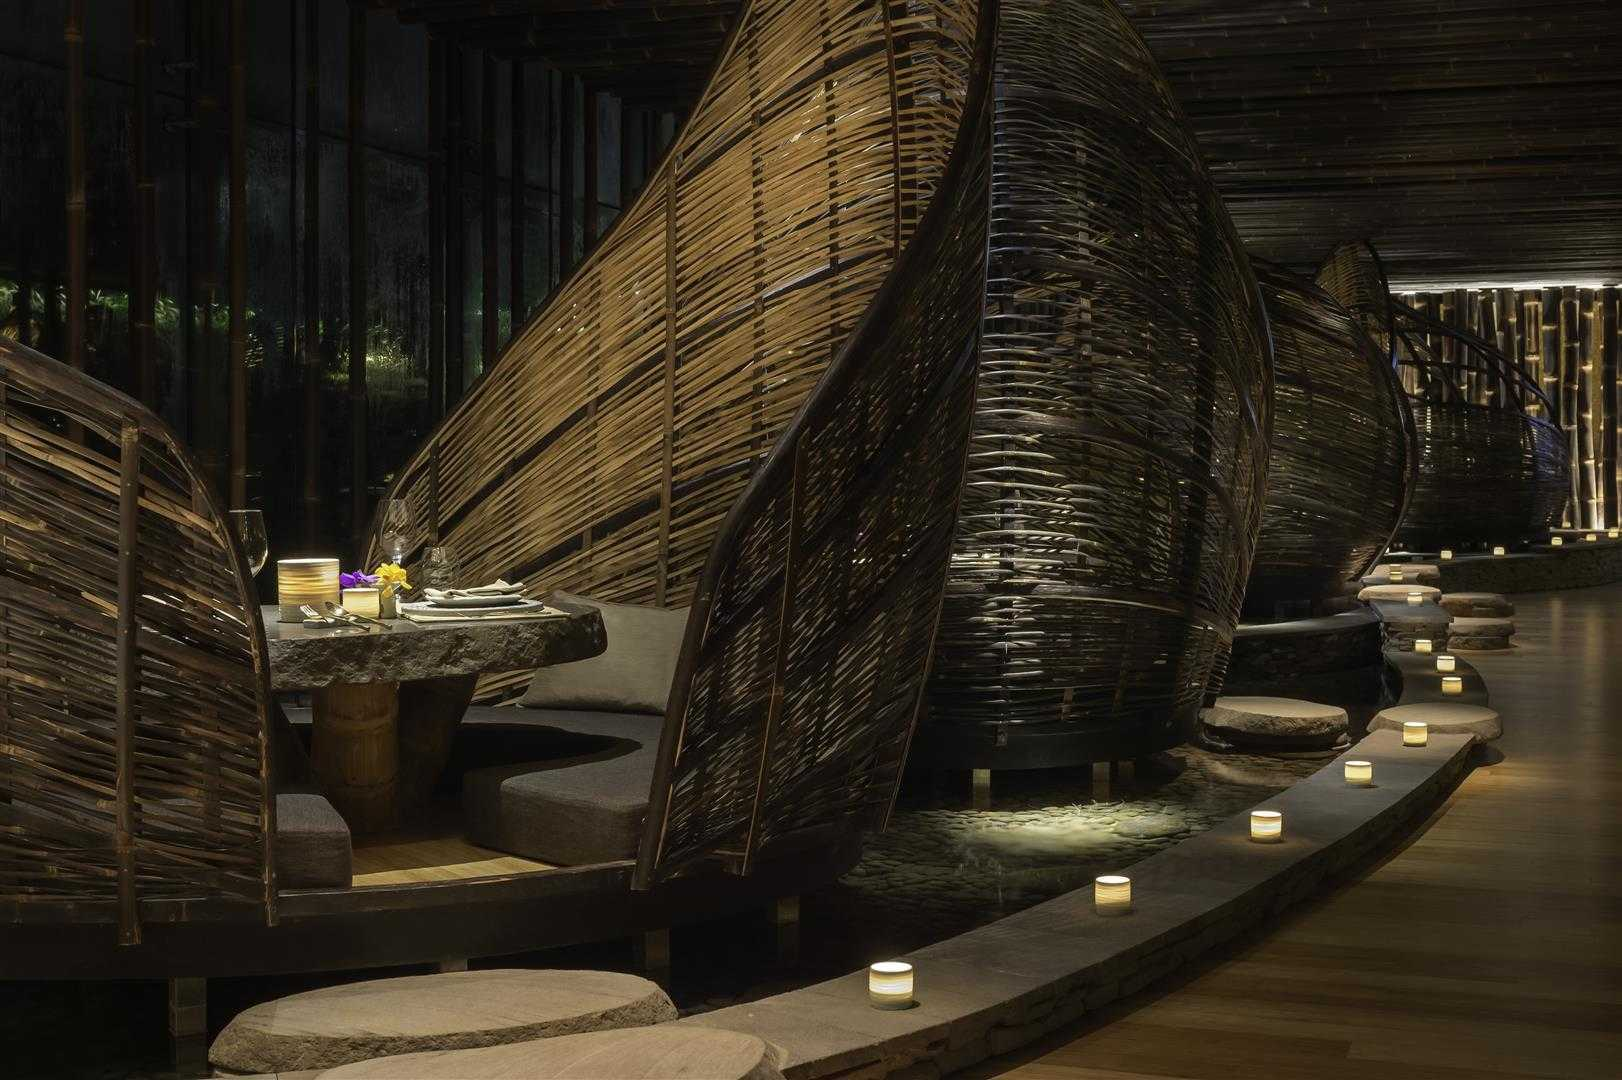 Agung Budi Raharsa | Architecture & Engineering Tri - Balinese Restaurant In Hong Kong 3Rd Floor The Pulse Building, Lido Complex, Repulse Bay, Hong Kong 3Rd Floor The Pulse Building, Lido Complex, Repulse Bay, Hong Kong Seating Area Interior View Tropis <P>Basket Pod For Couple At Dinner Time</p> 12219